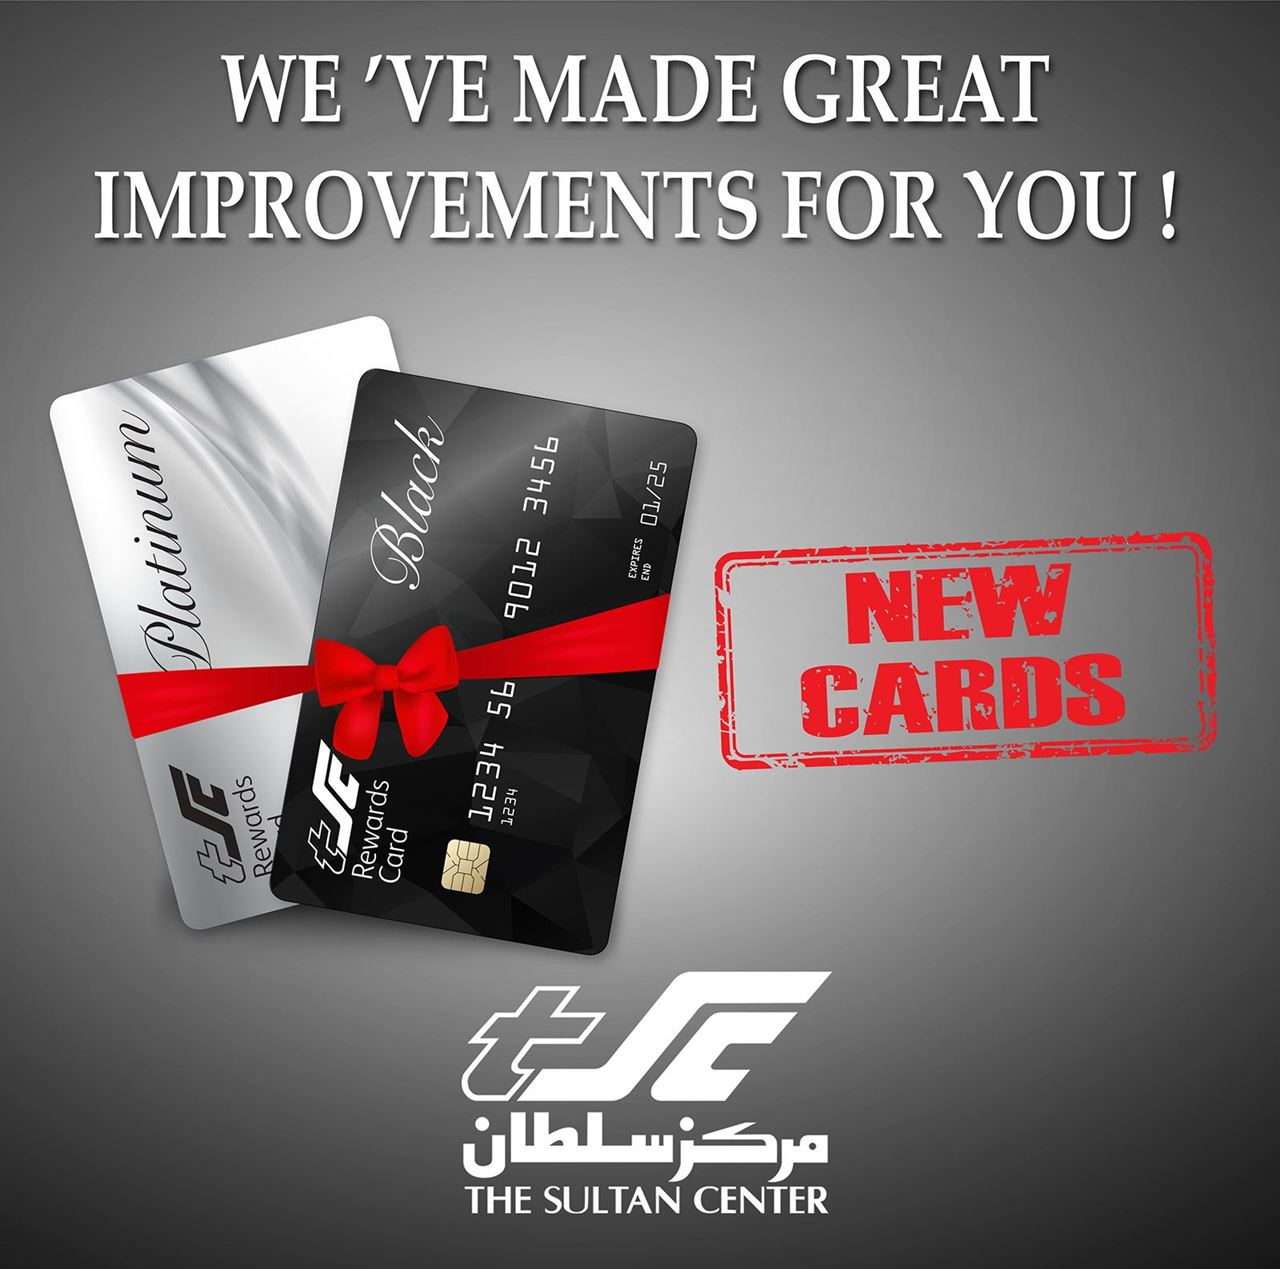 The Sultan Center Rewards Program Caters to Customers' Demands